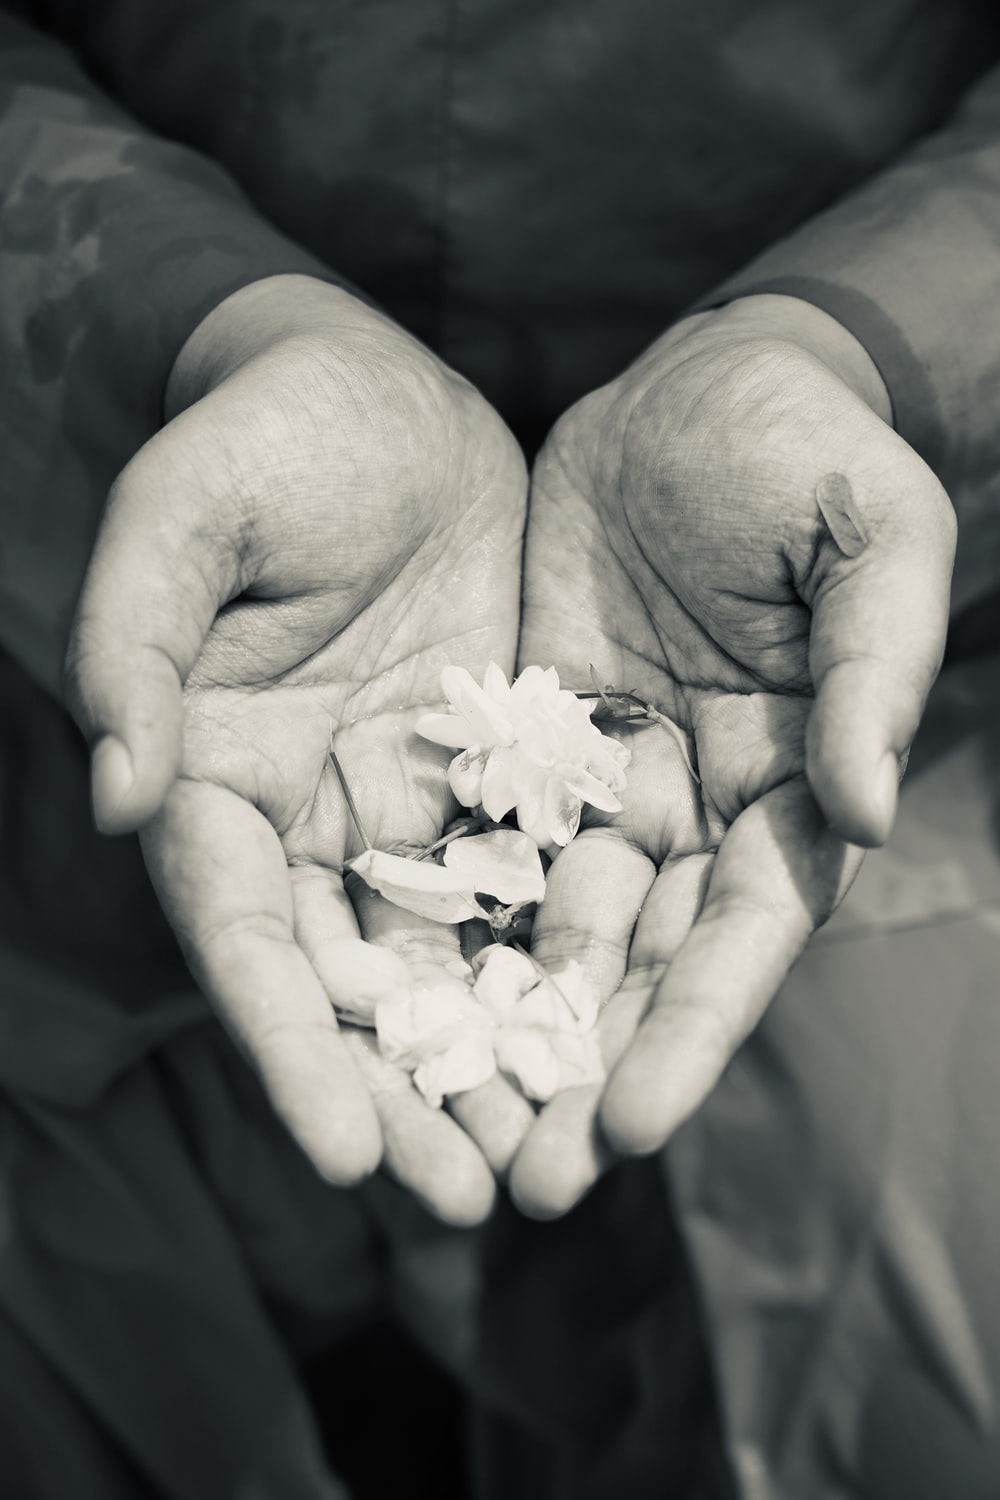 human hands with flowers